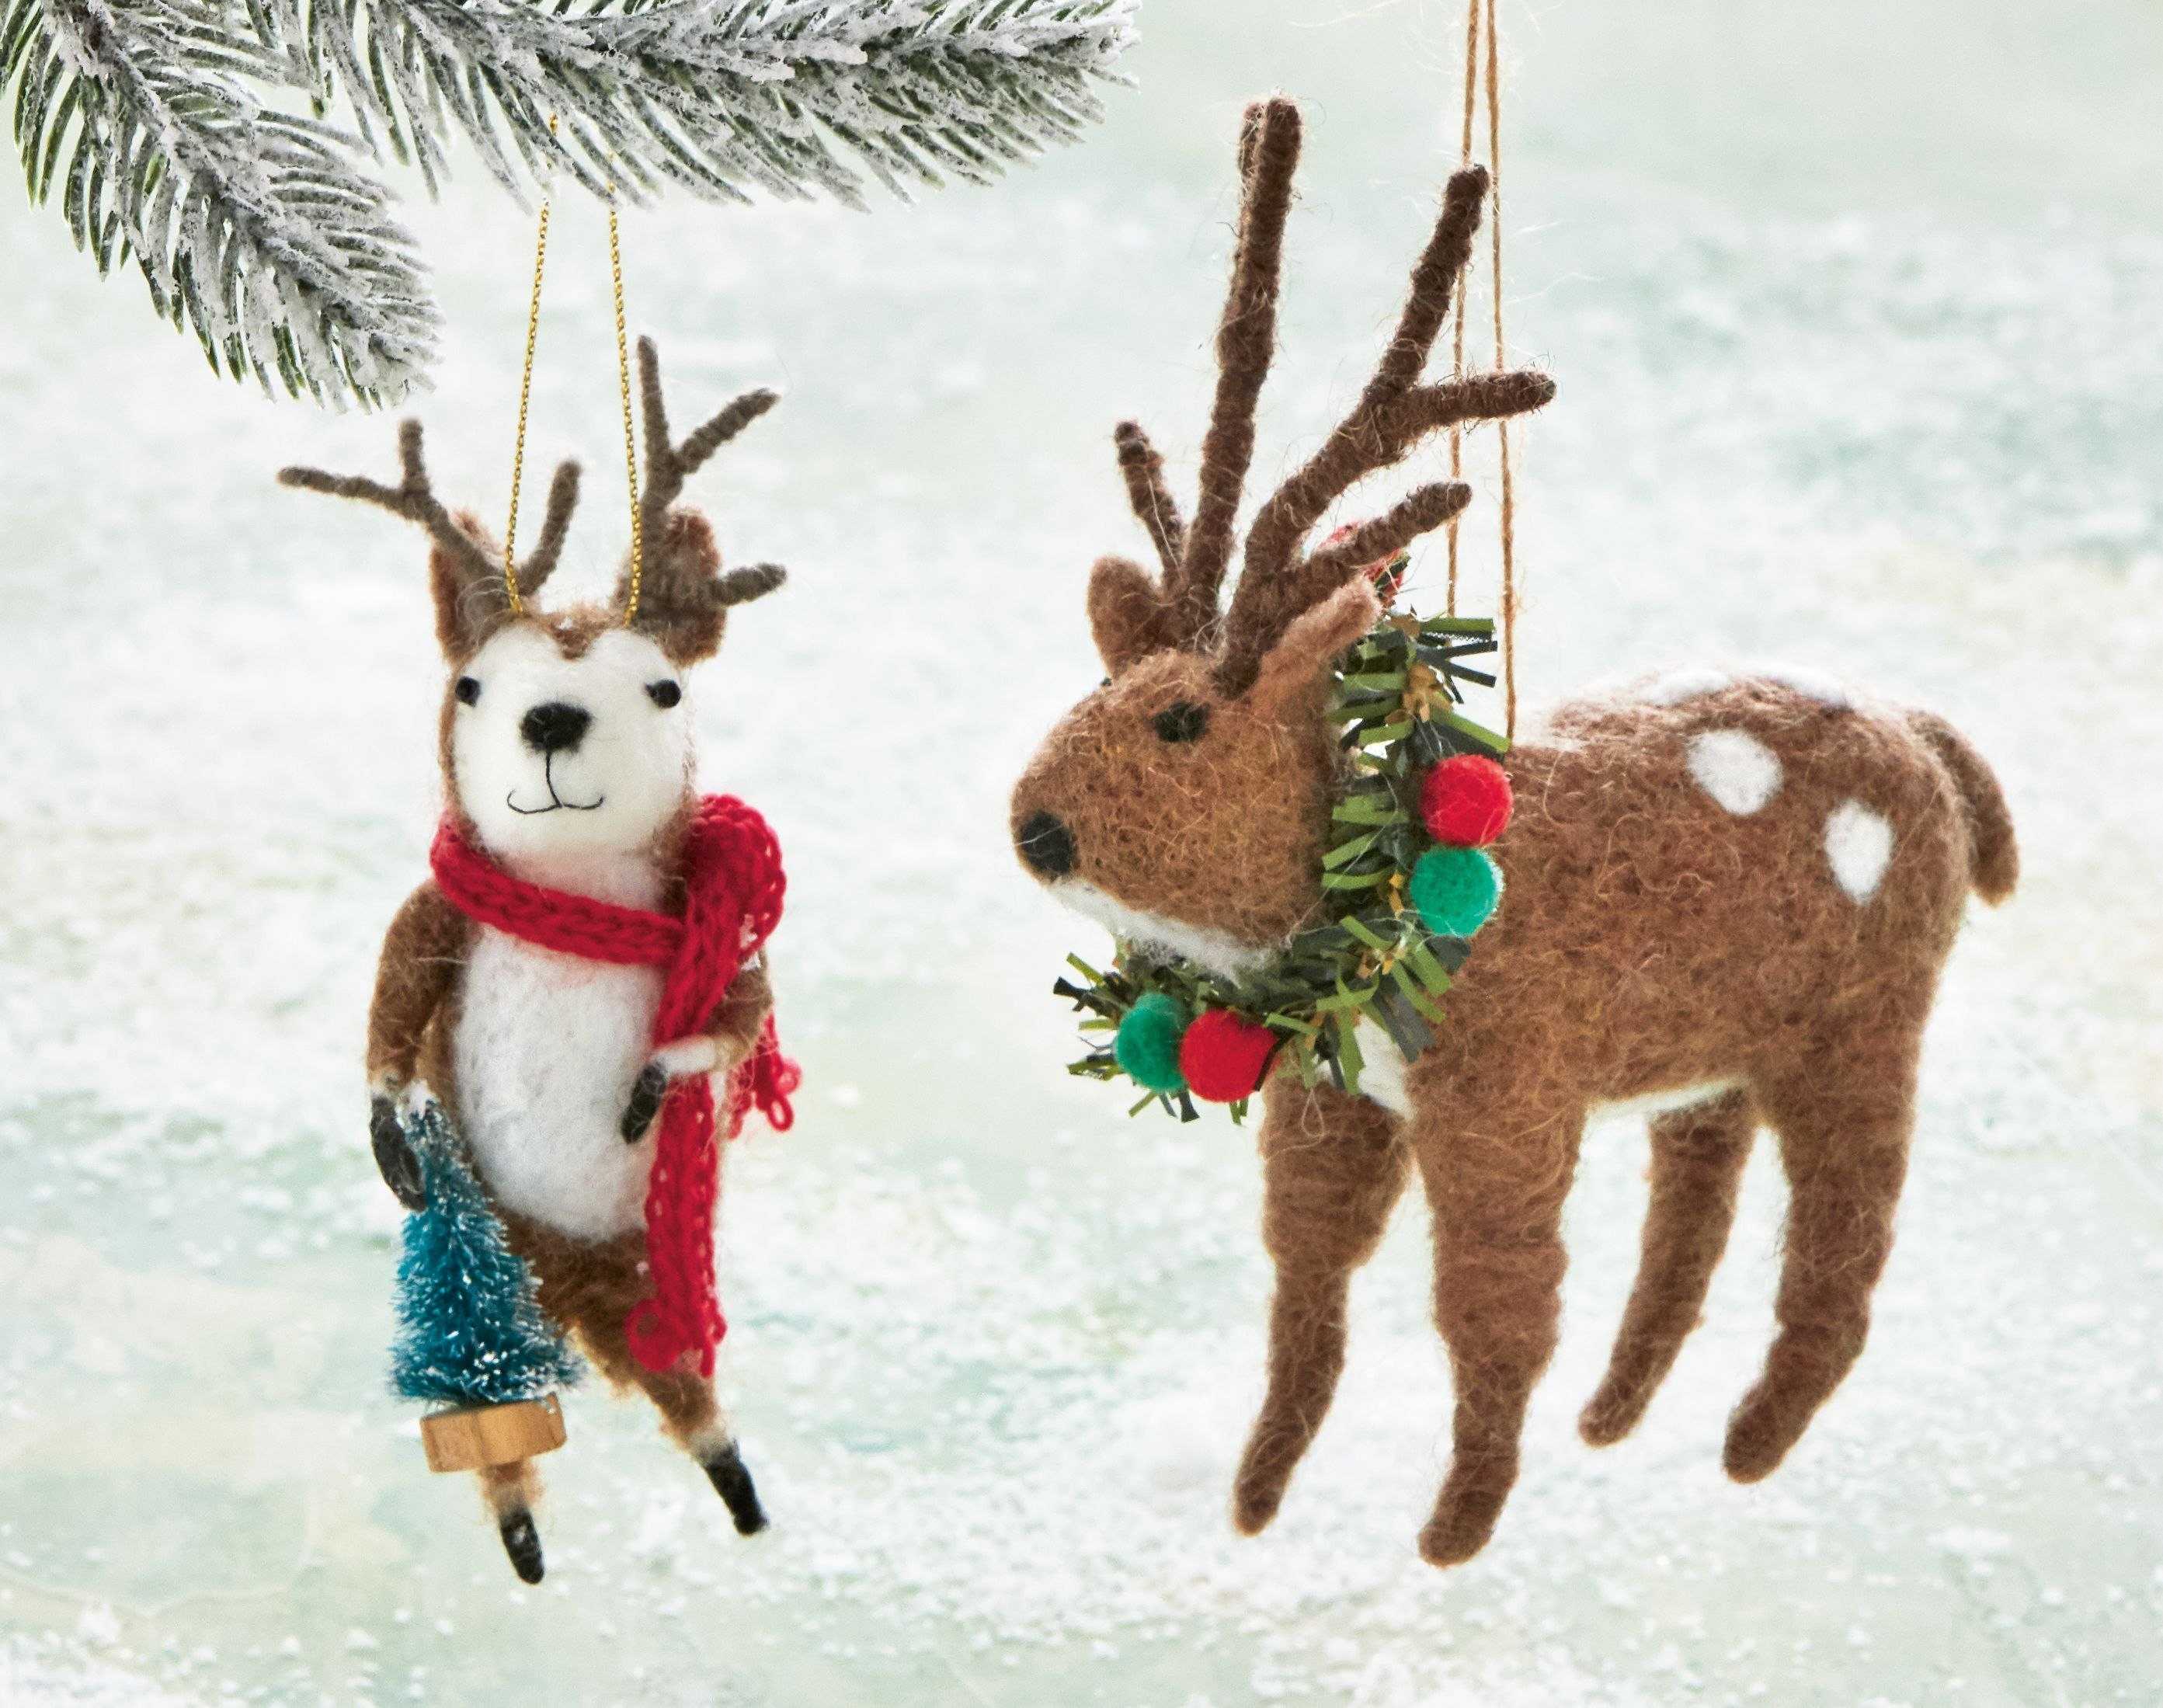 Reindeer Ornaments in 2020 Christmas ornaments, Reindeer